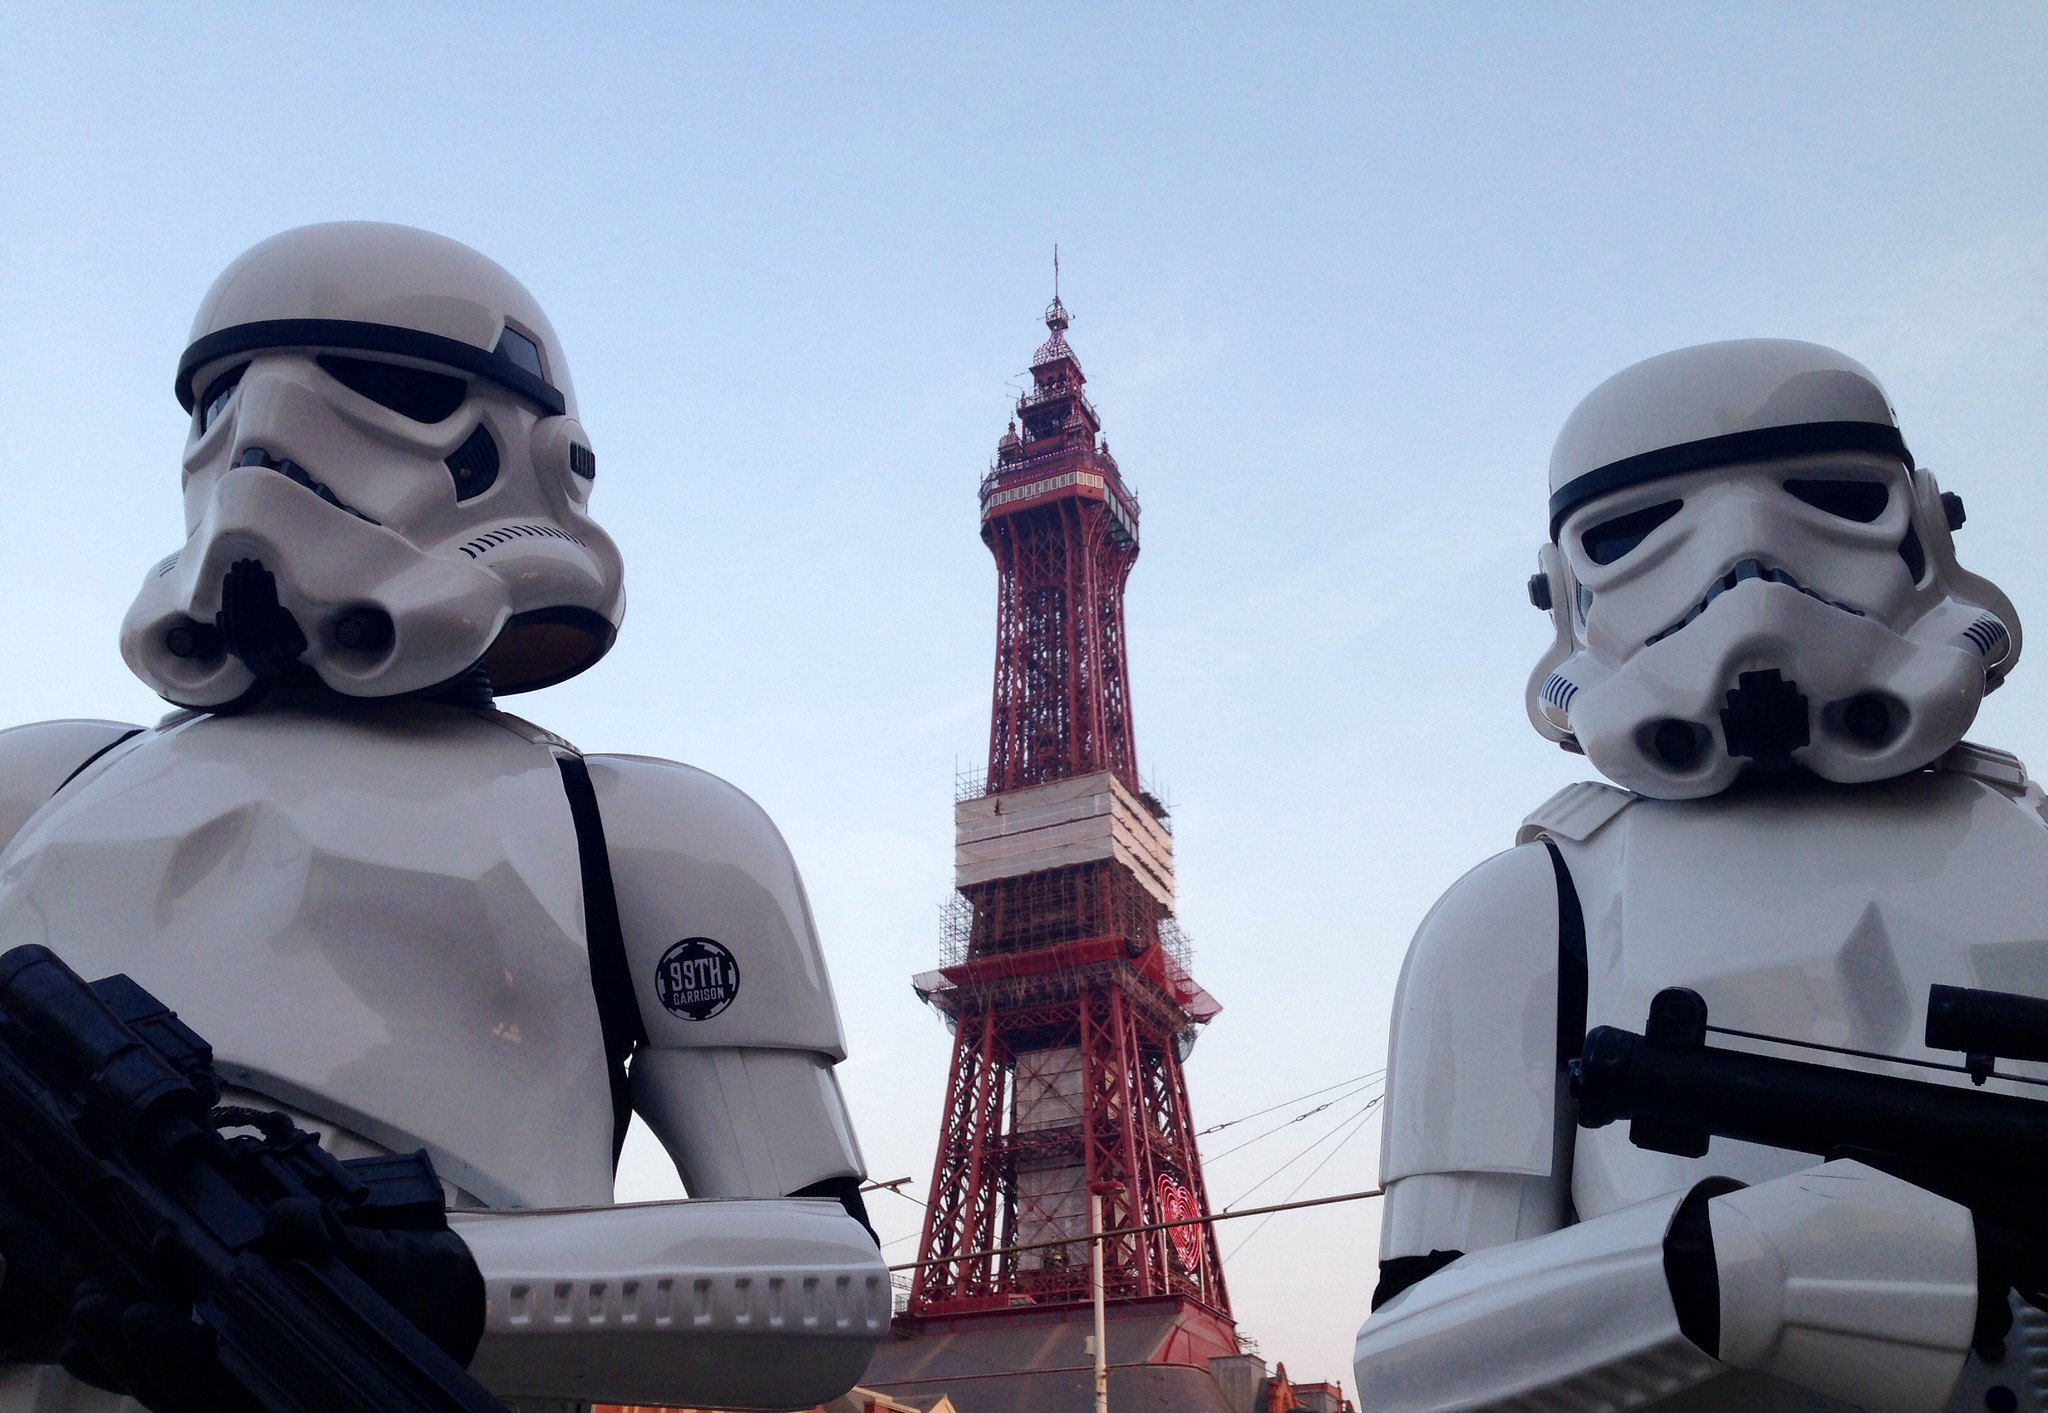 Blackpool Comic-Con Launch Party - Star Wars Stormtroopers by Blackpool Tower